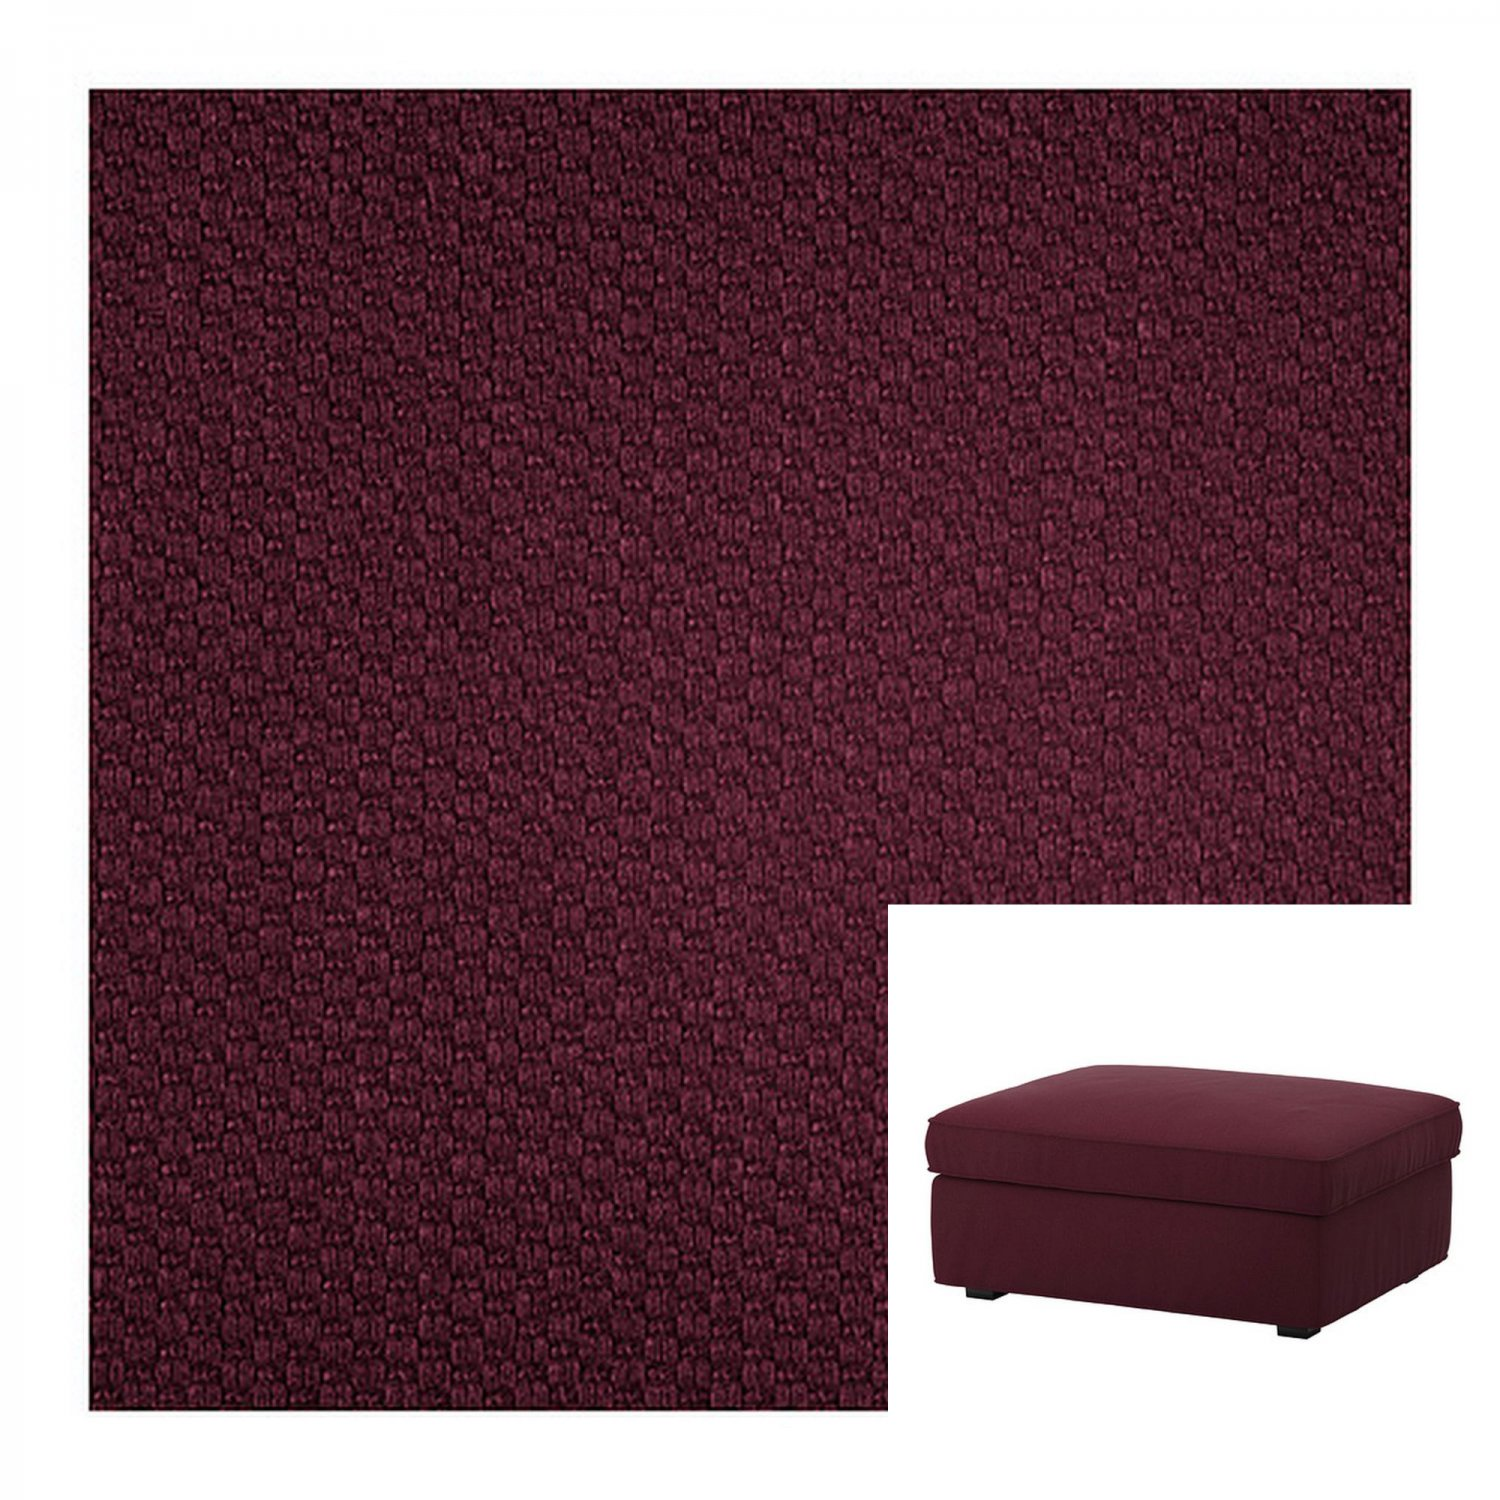 IKEA Kivik Footstool SLIPCOVER Ottoman Cover DANSBO Red-Lilac Red Lilac Purple Wine Burgundy